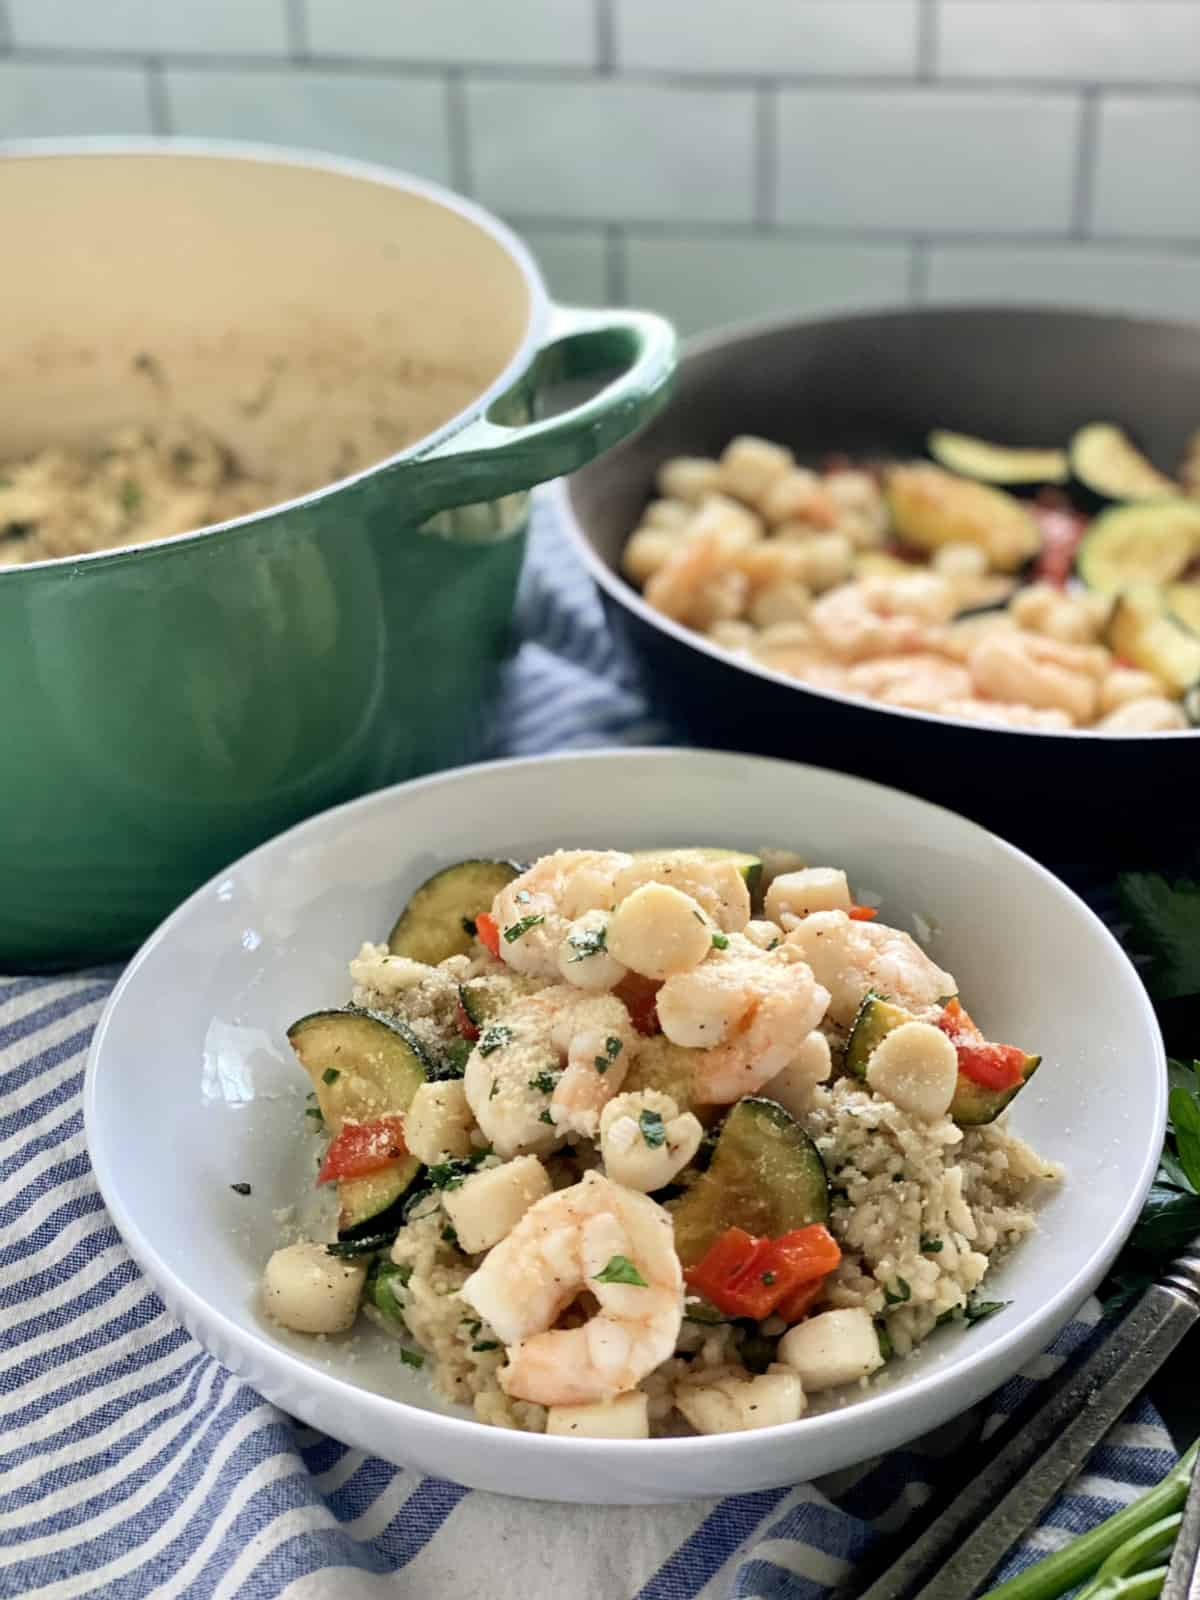 White bowl with seafood risotto with green pot and sauce pan of seafood.